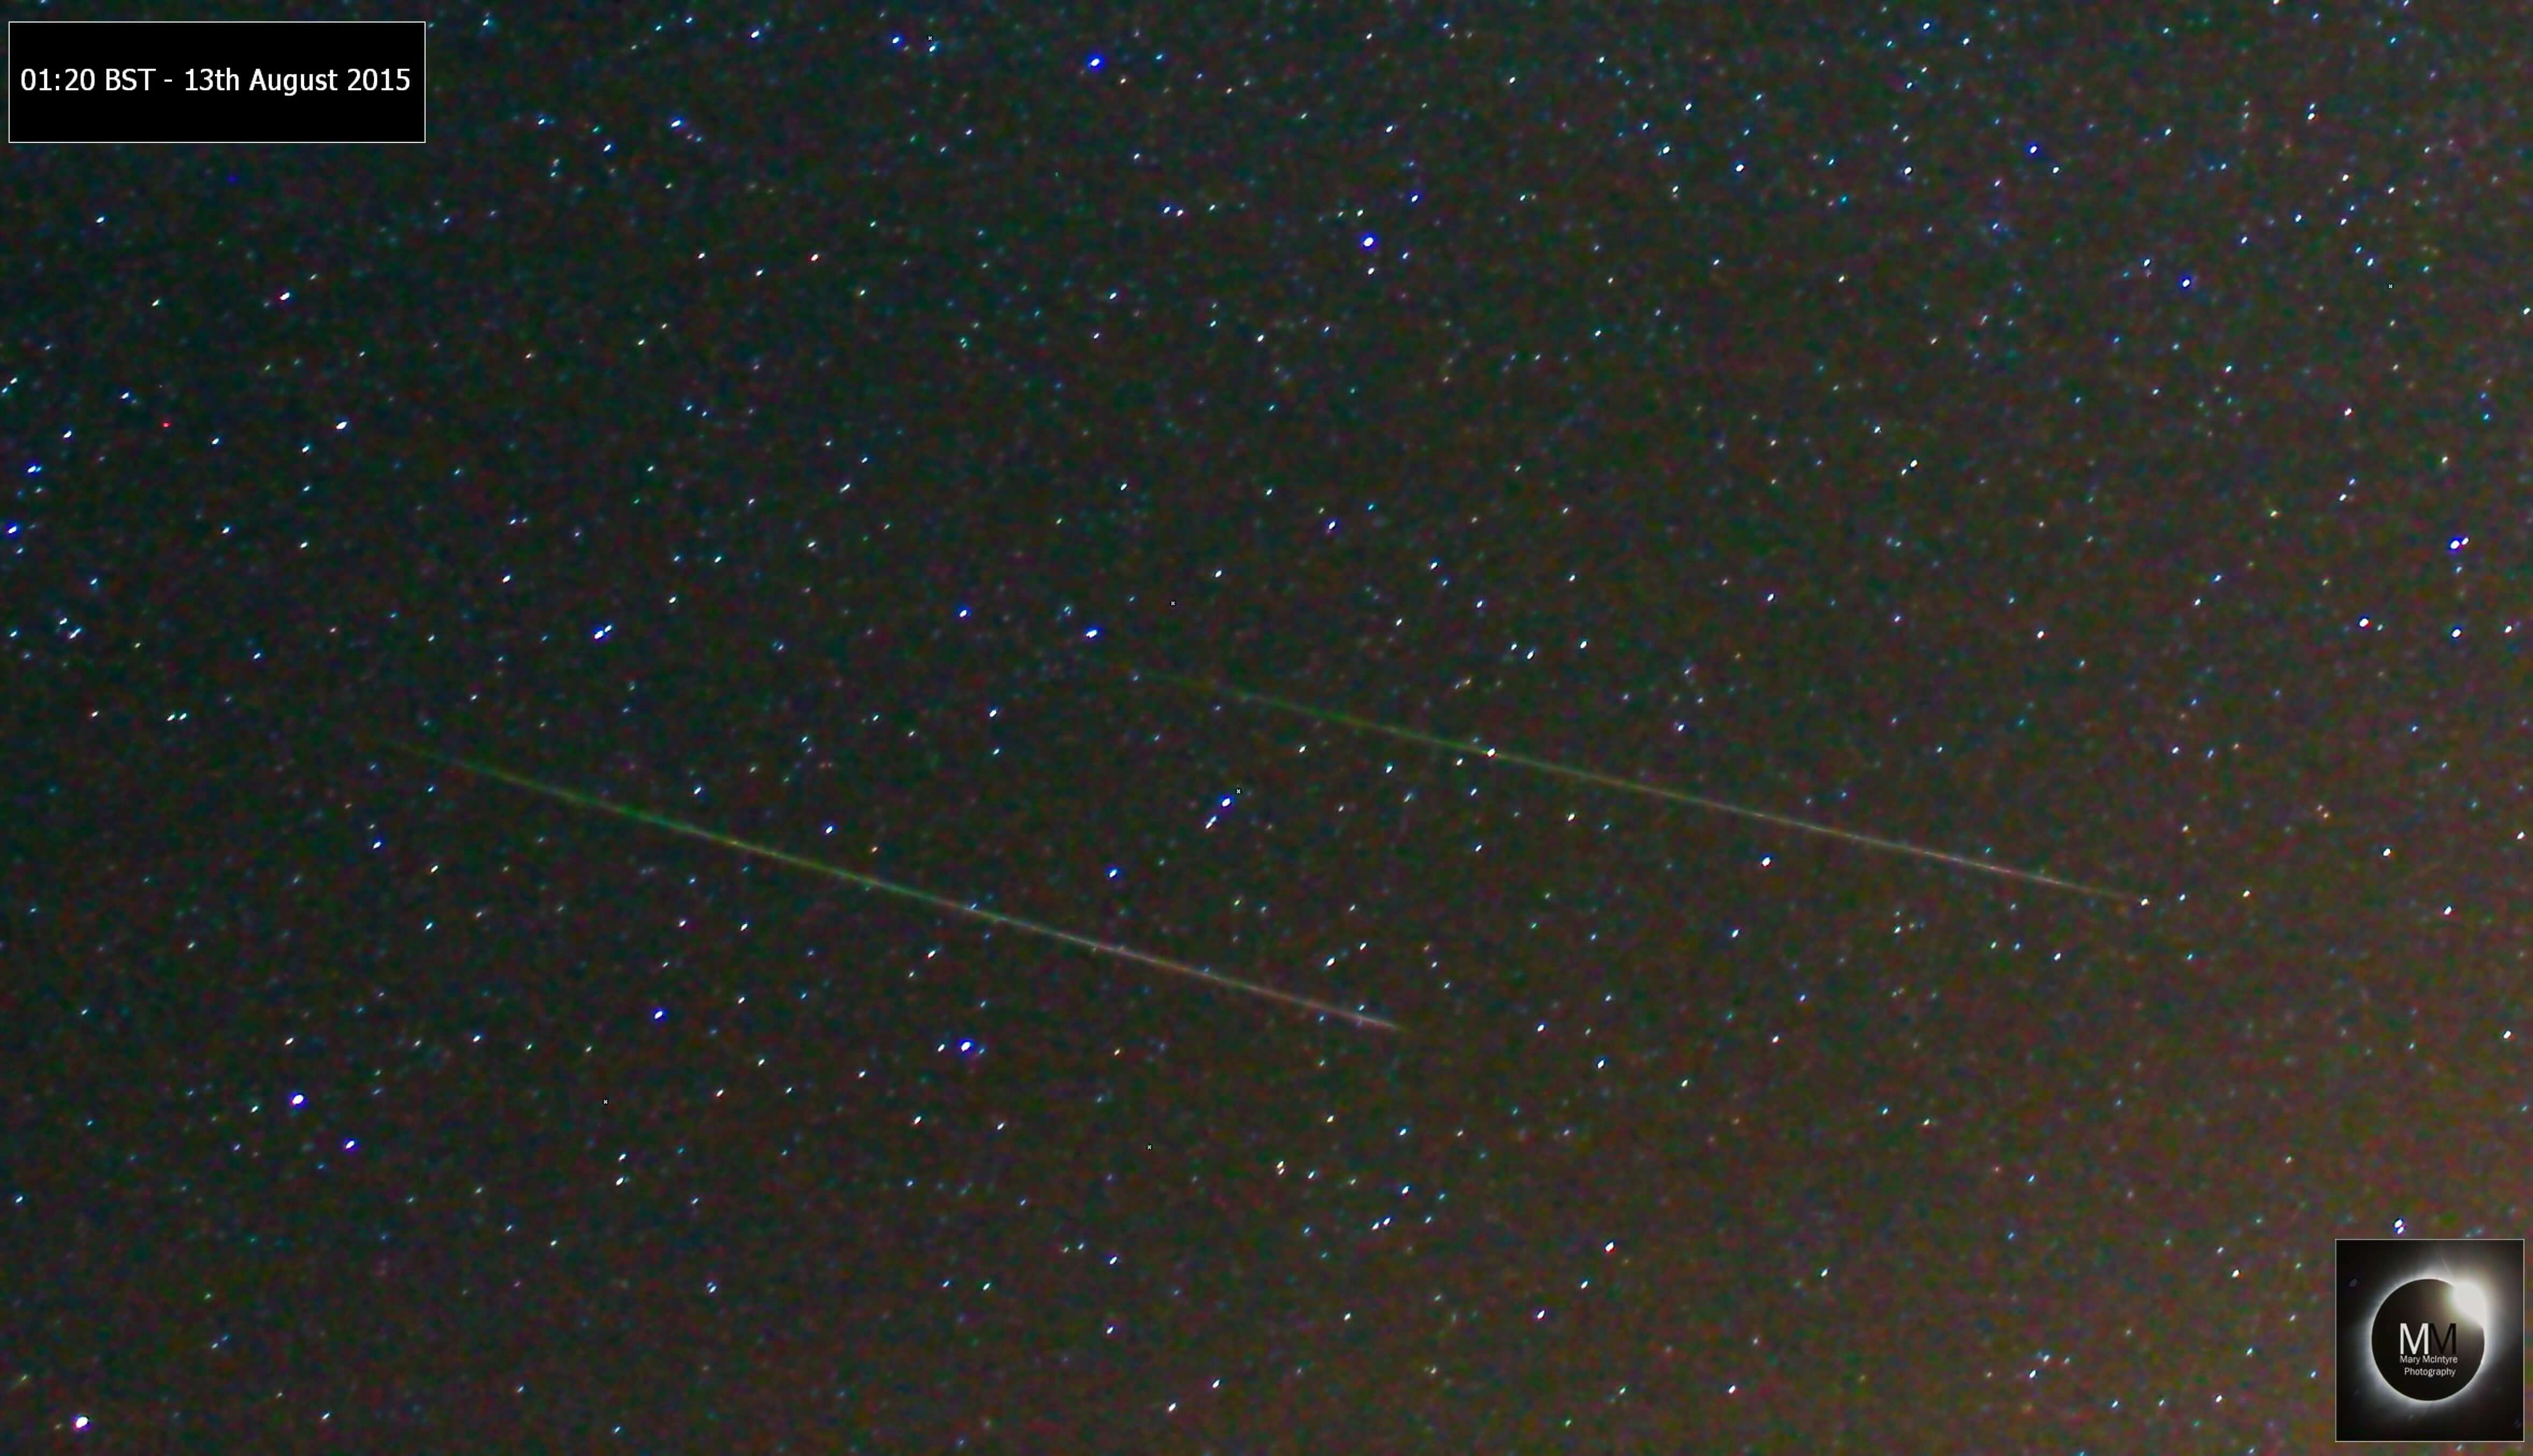 Then two come along at once! Two Perseid meteors, 01:20BST 13th August 2015 from Oxfordshire by Mary McIntyre